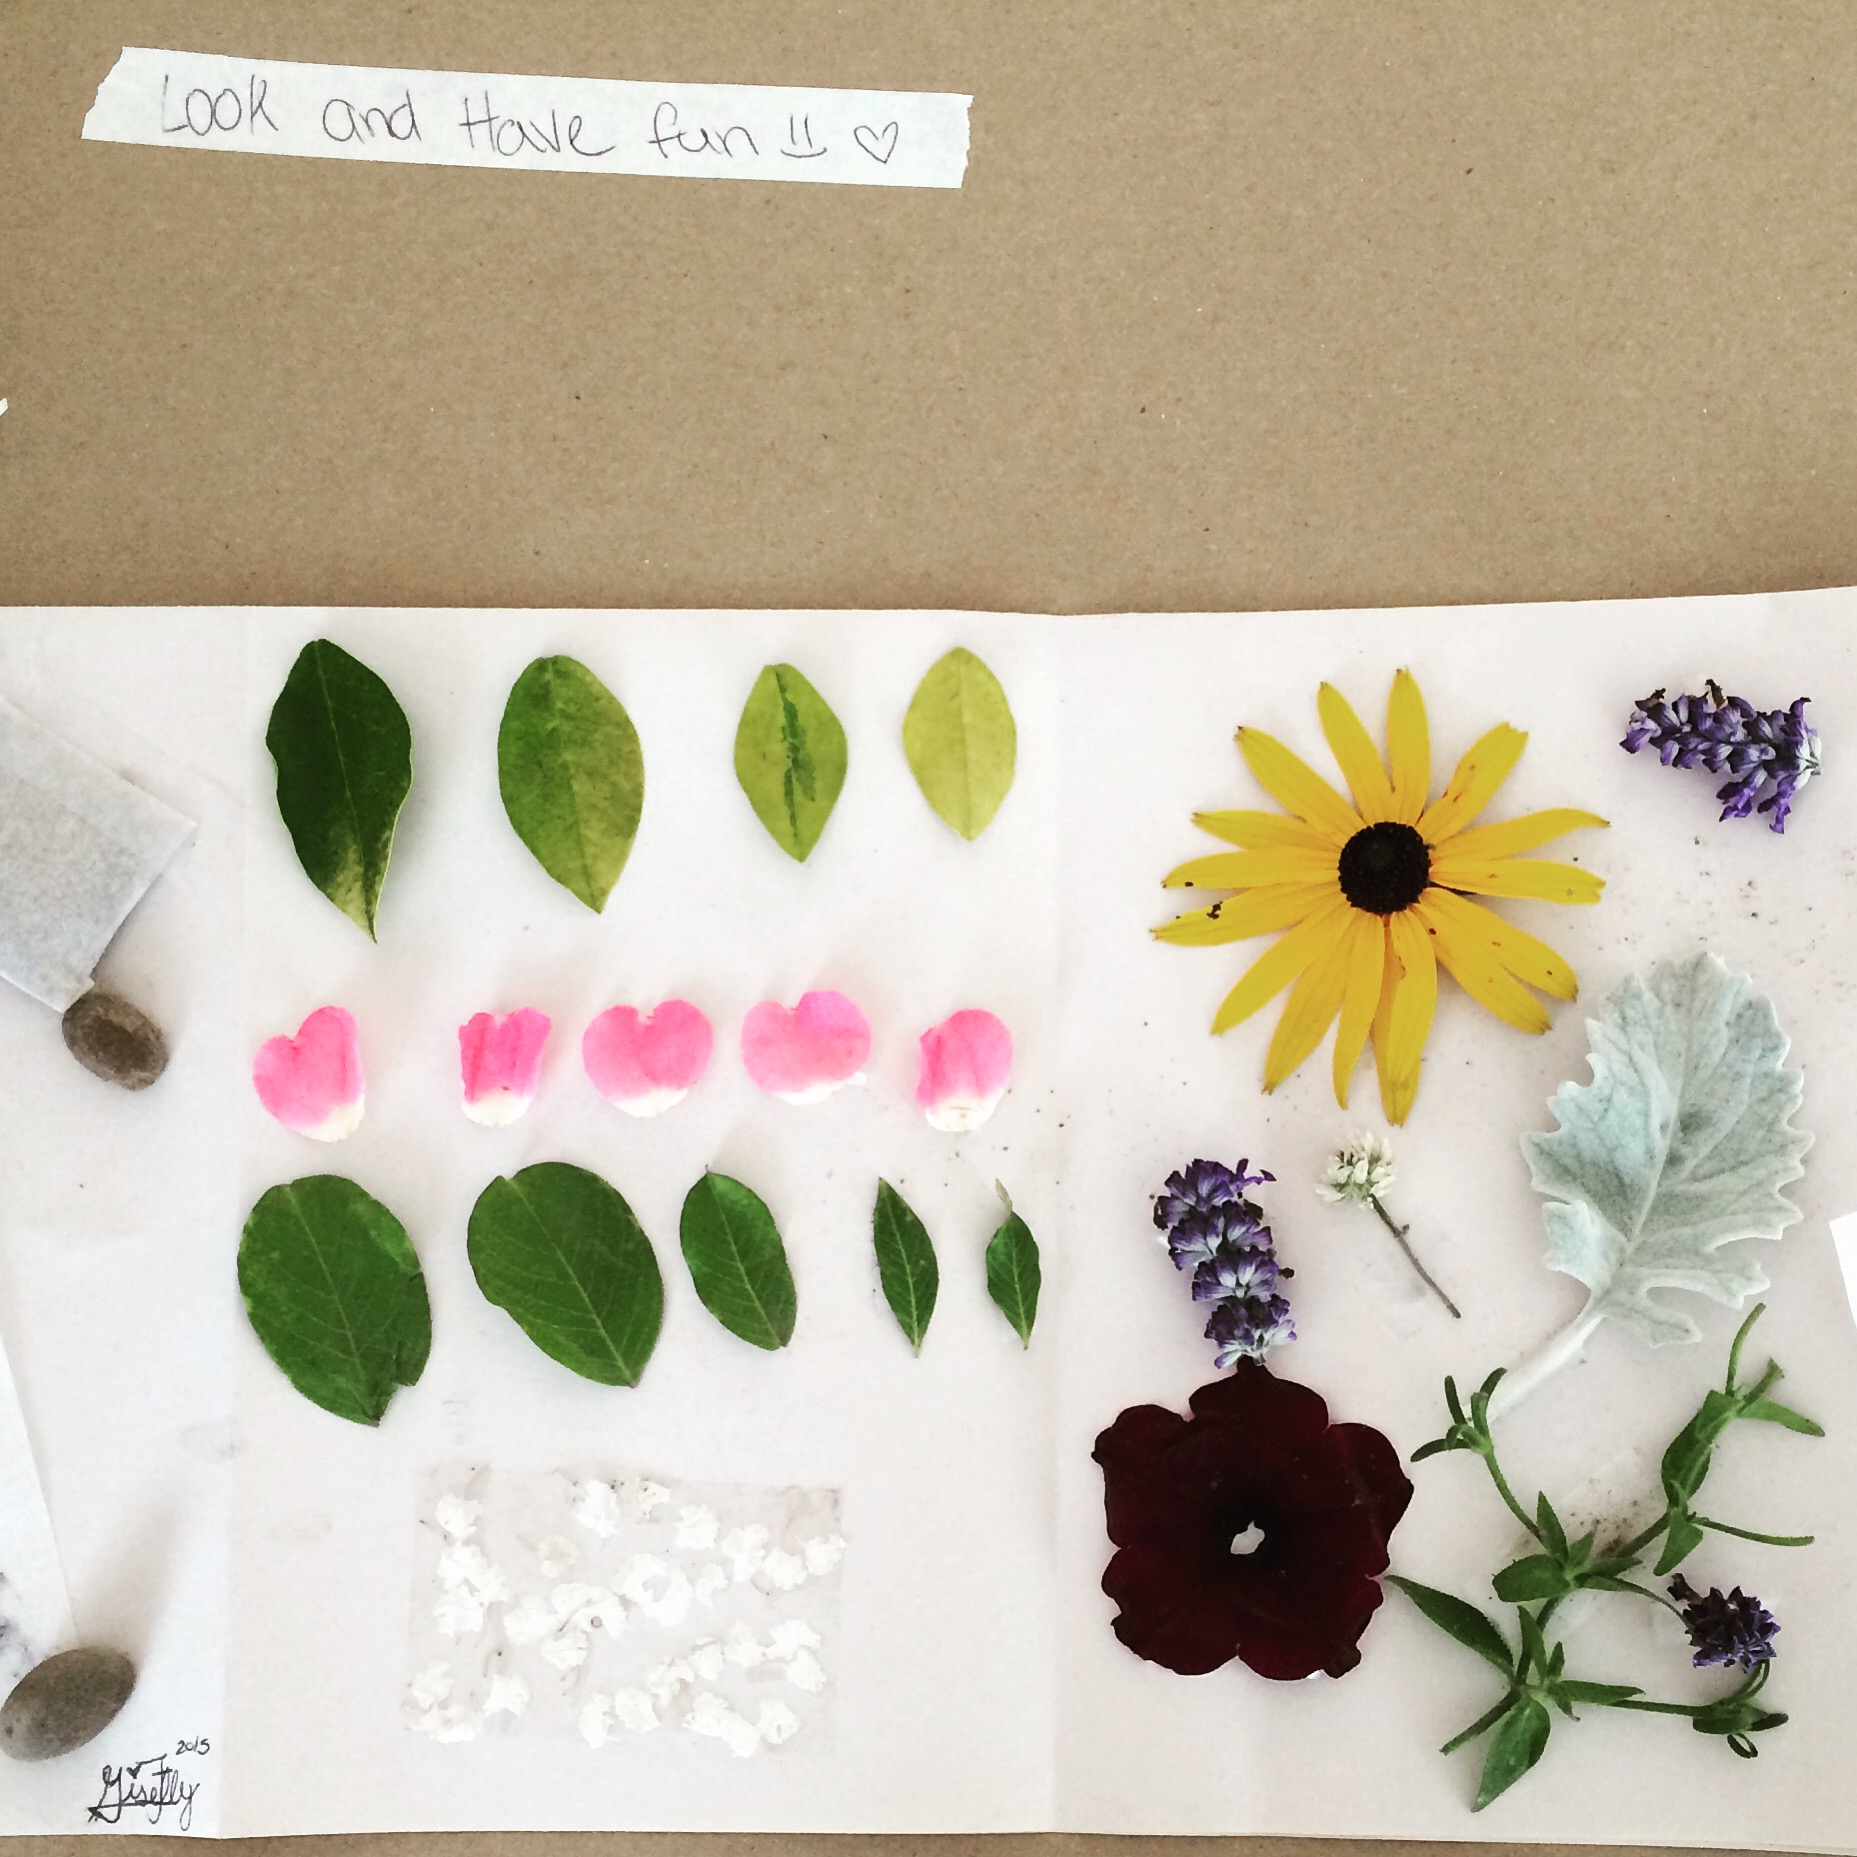 Nature-Collecting_Field-Journals_Giselly.JPG